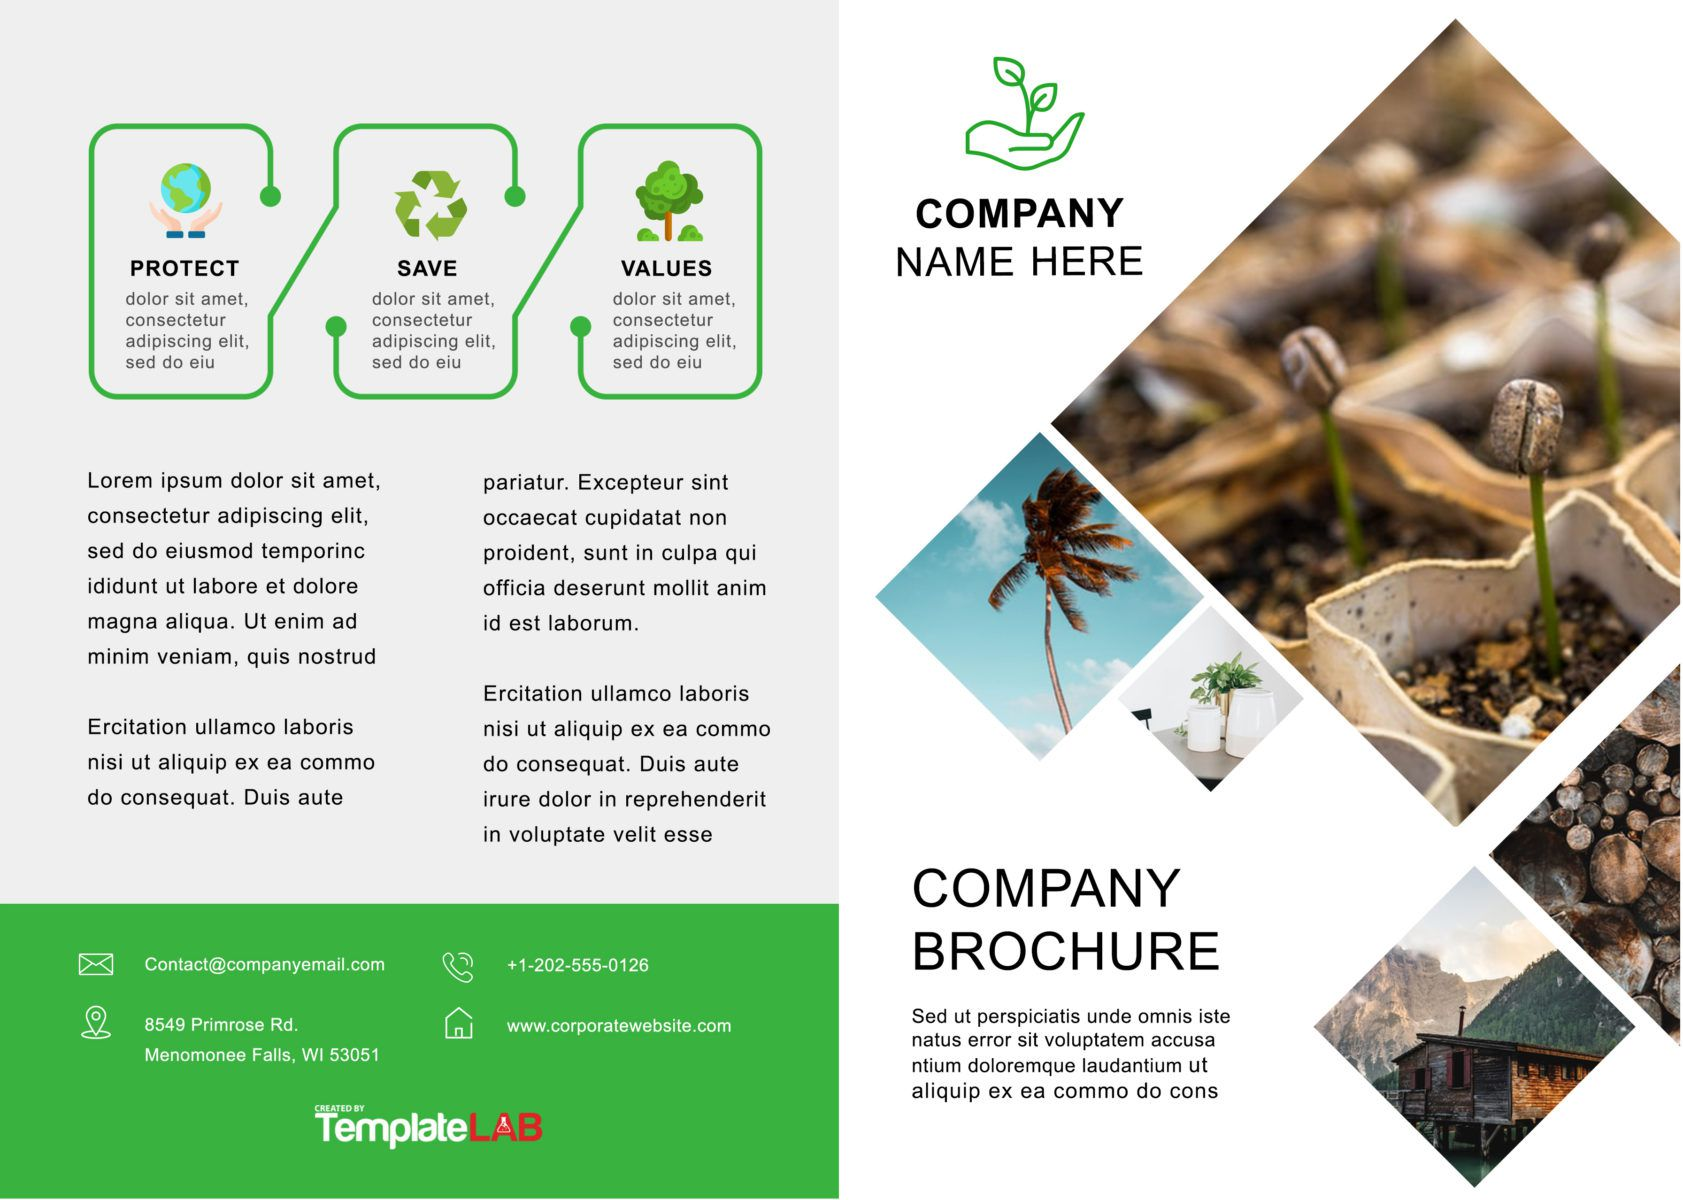 003 Remarkable Word Brochure Template Download Free Idea  3 Fold Travel TriFull